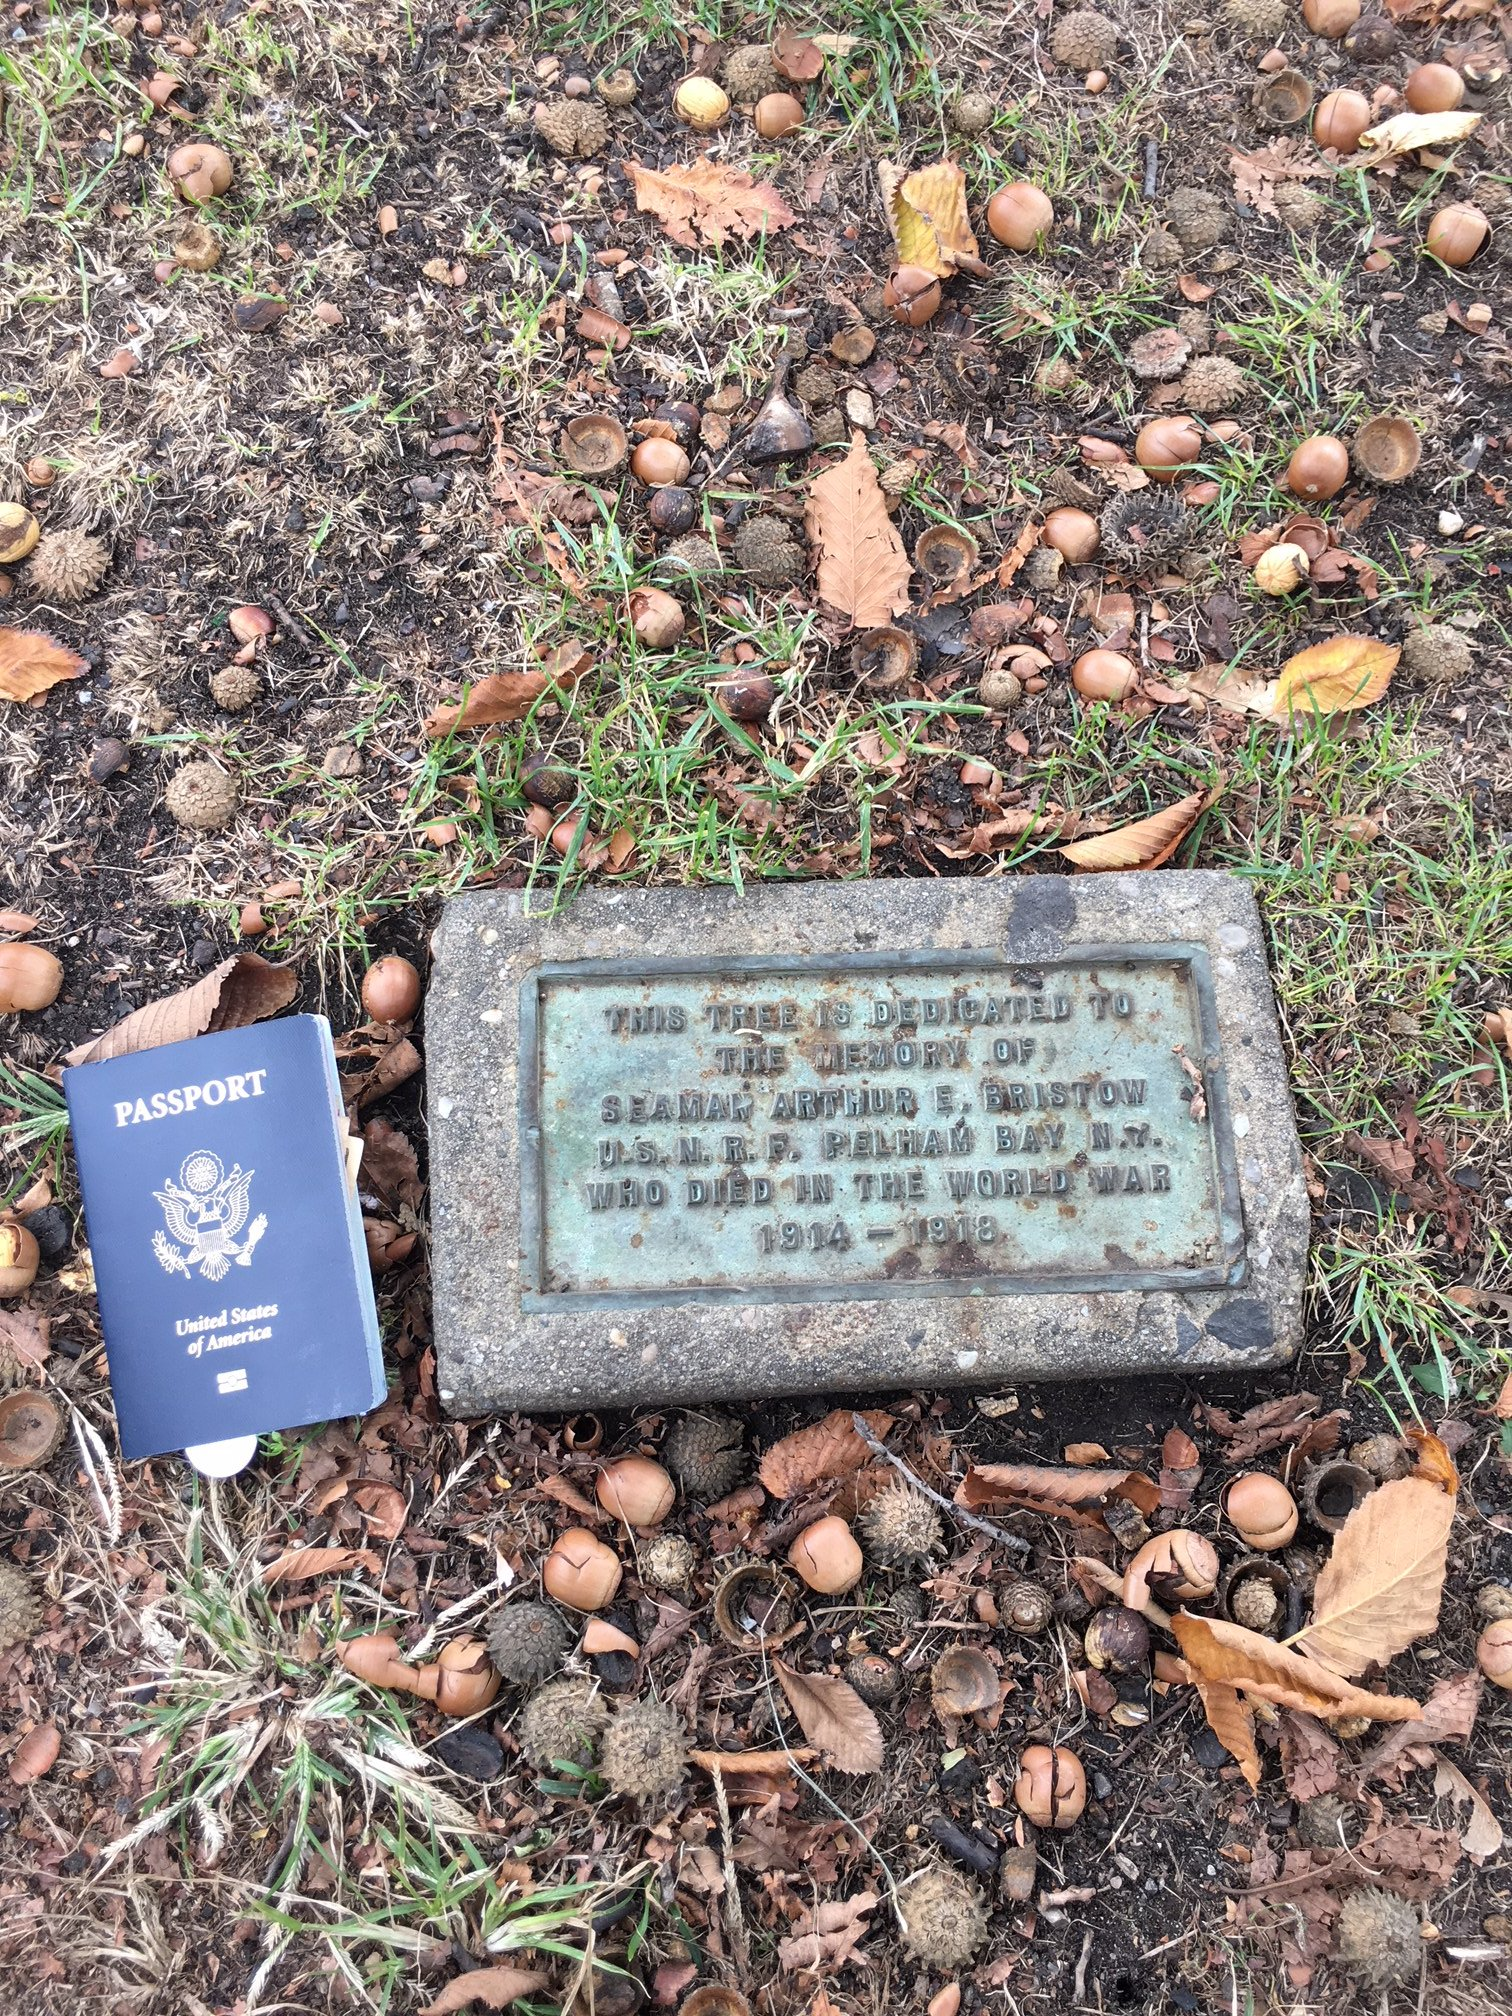 Plaque next to U.S. passport for size.